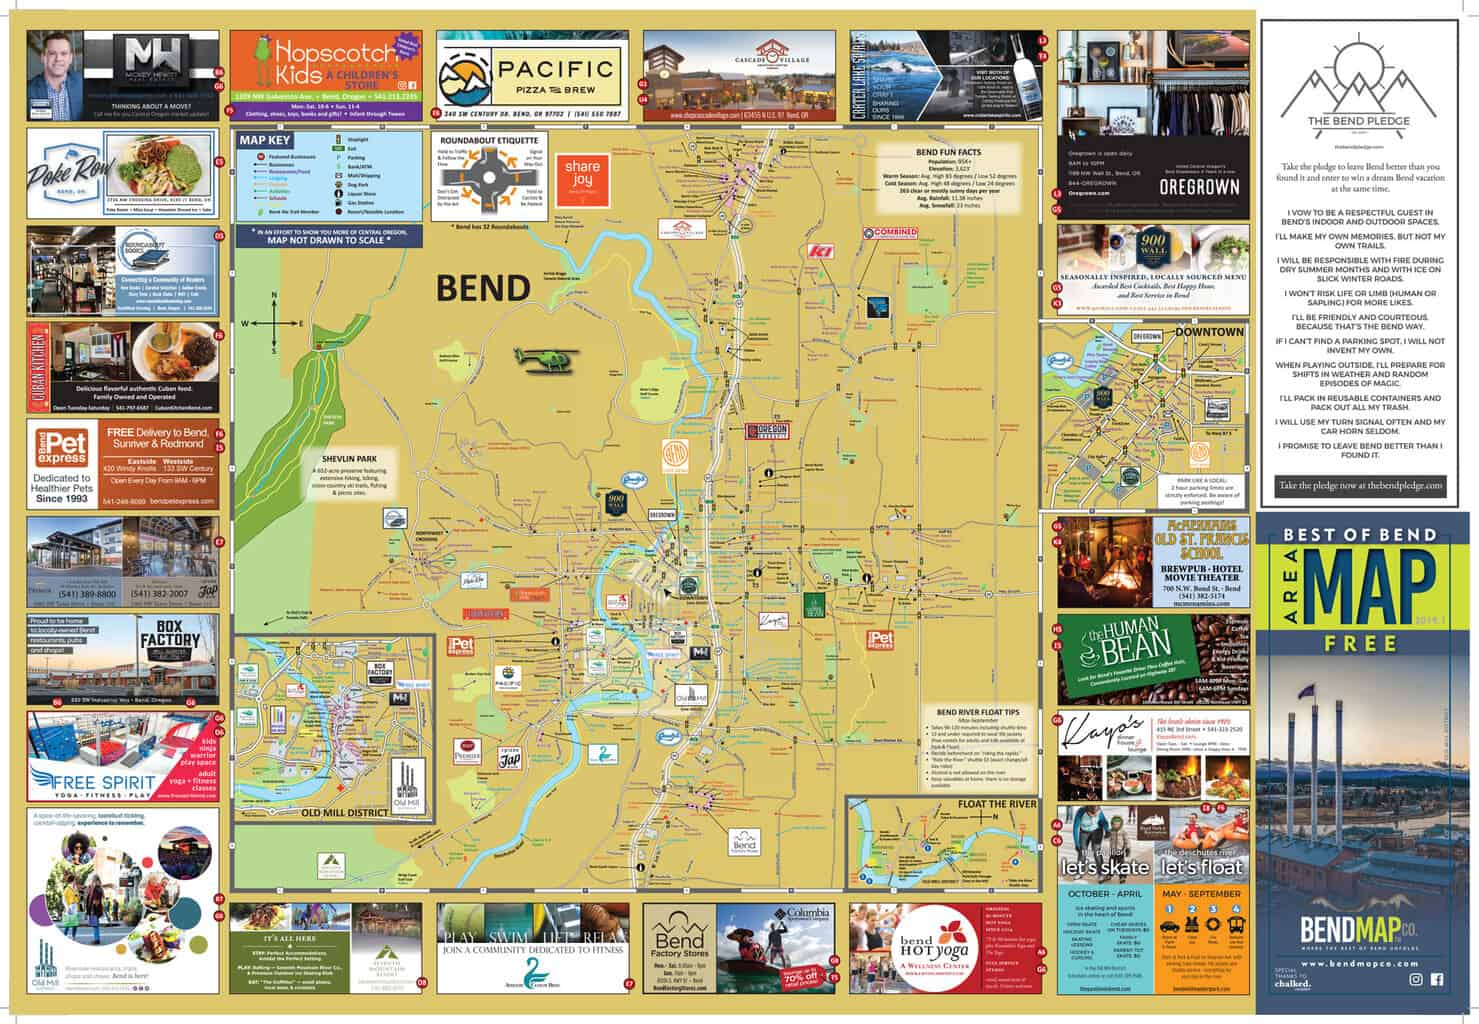 Bend Oregon Visitors Map Including Old Mill District and Downtown Bend